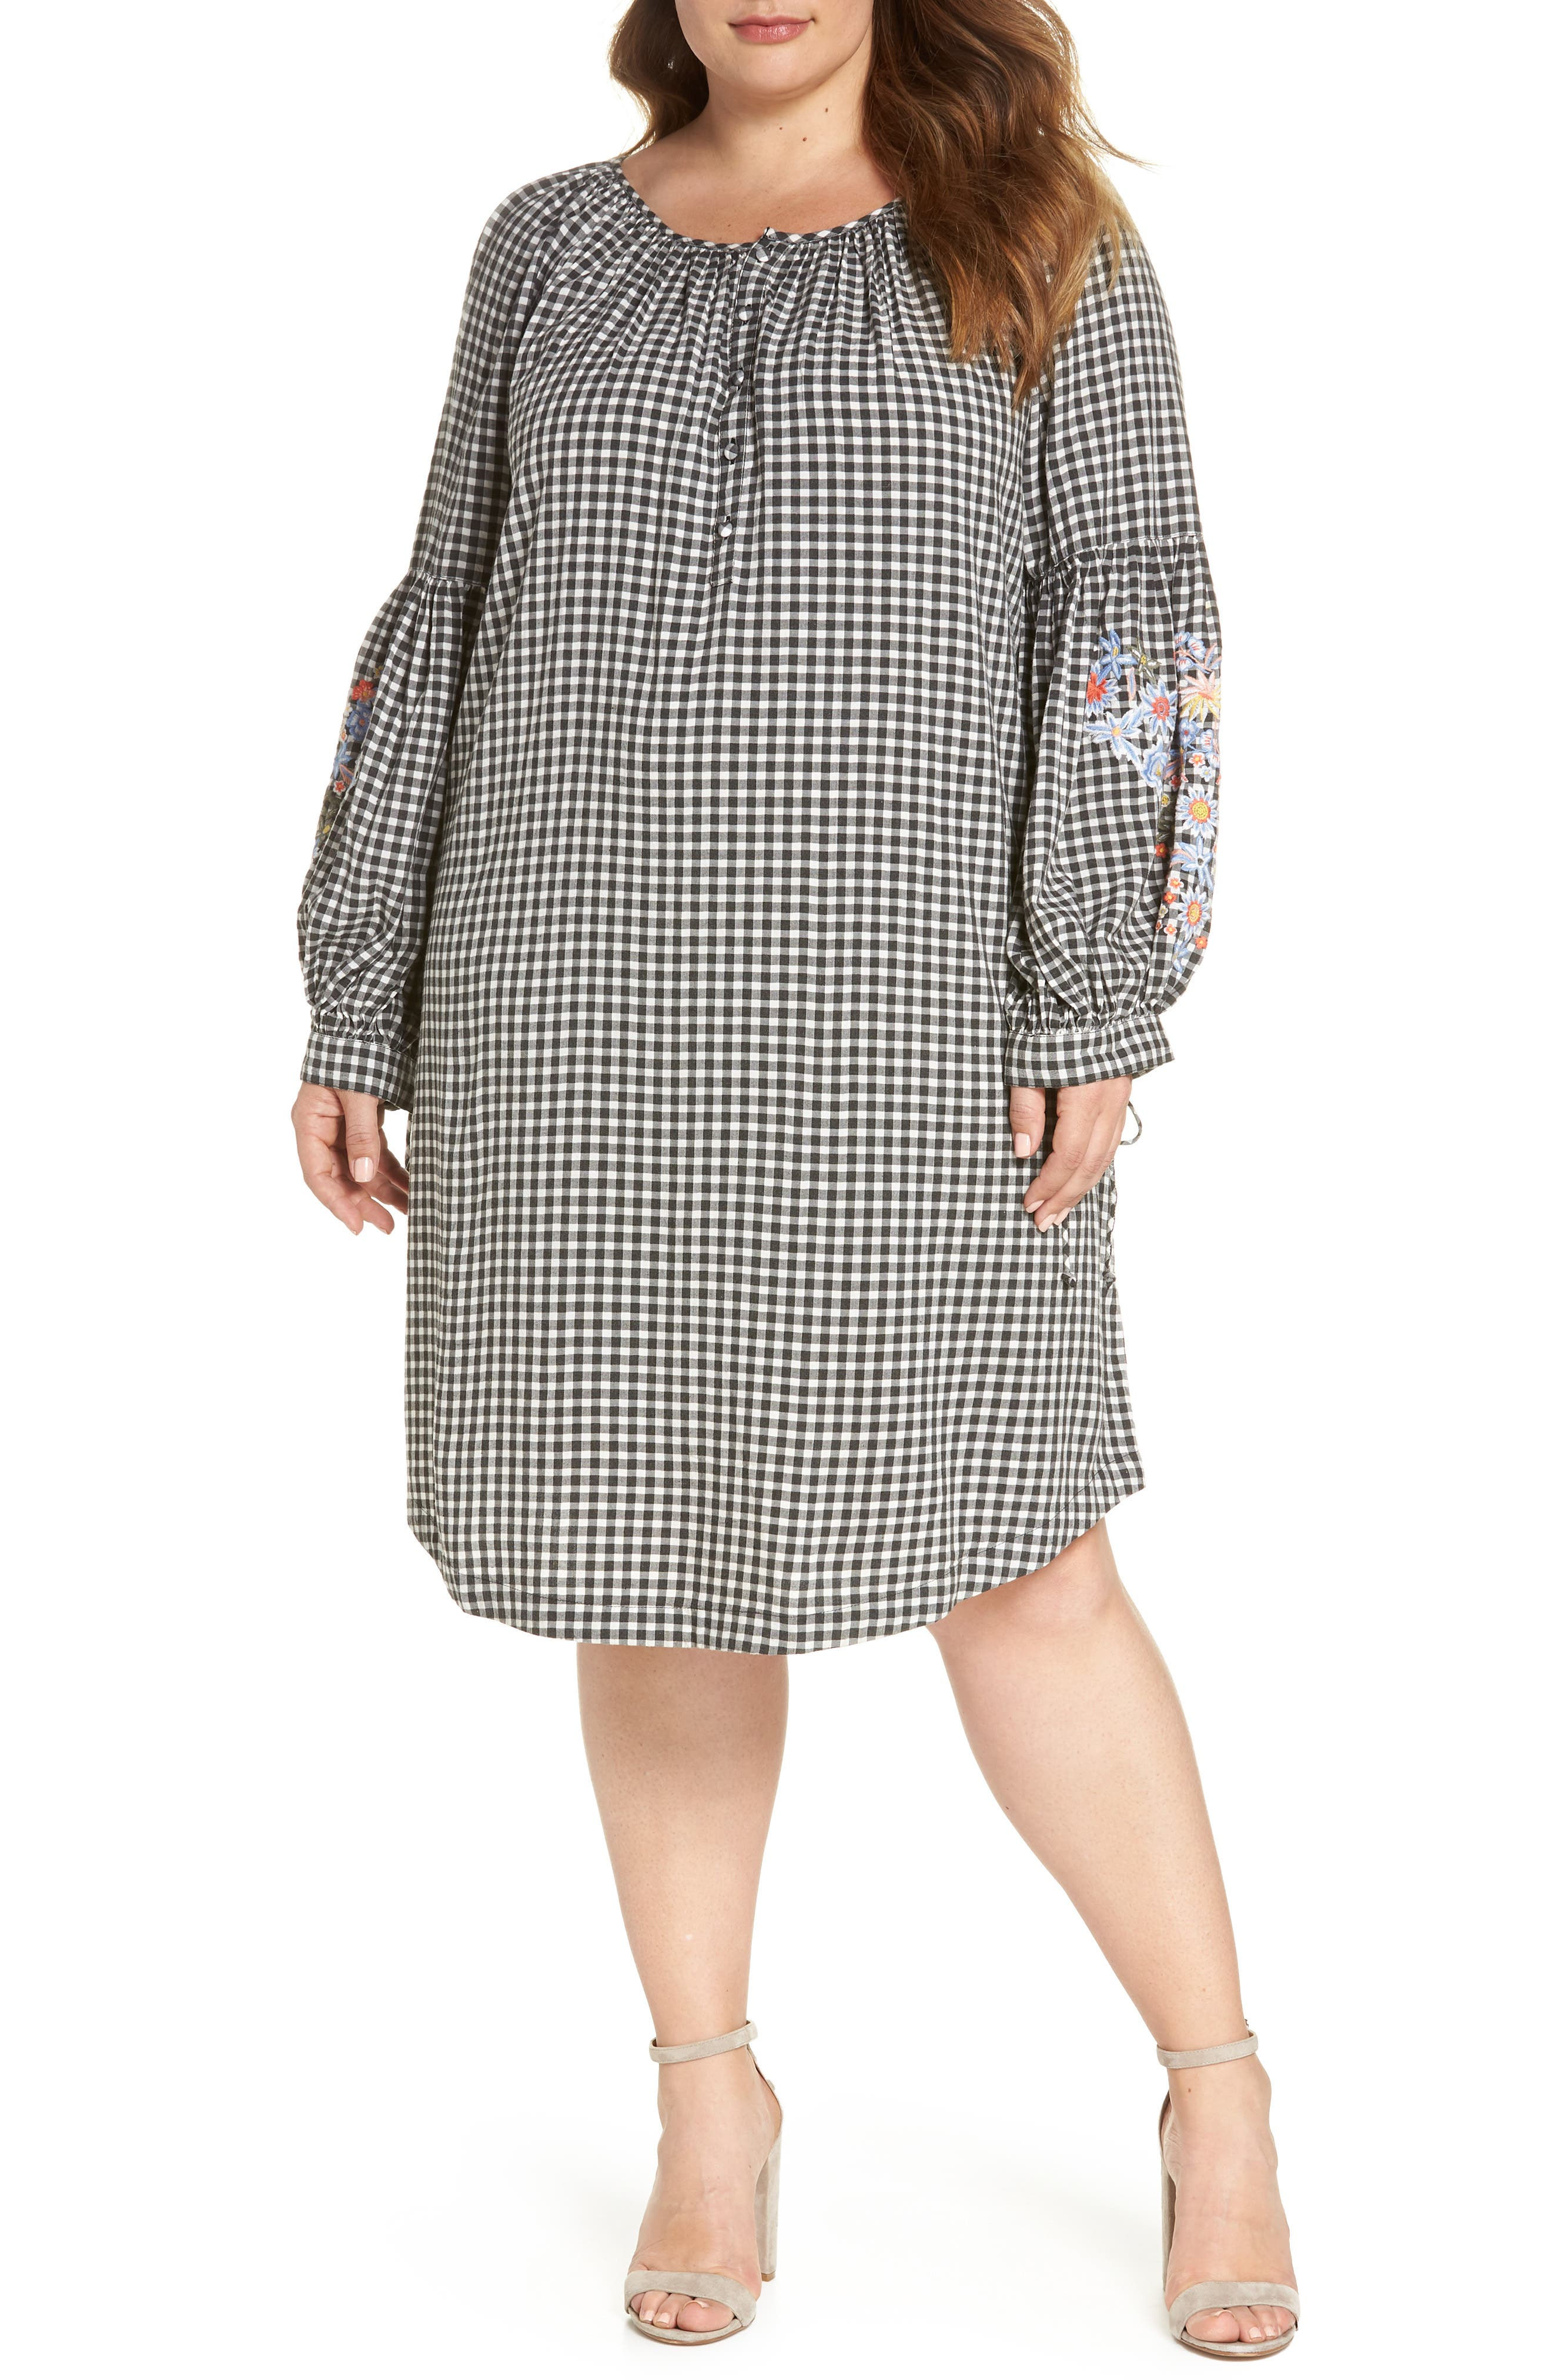 Embroidered Puff Sleeve Gingham Shift Dress,                         Main,                         color, Black-White Gingham